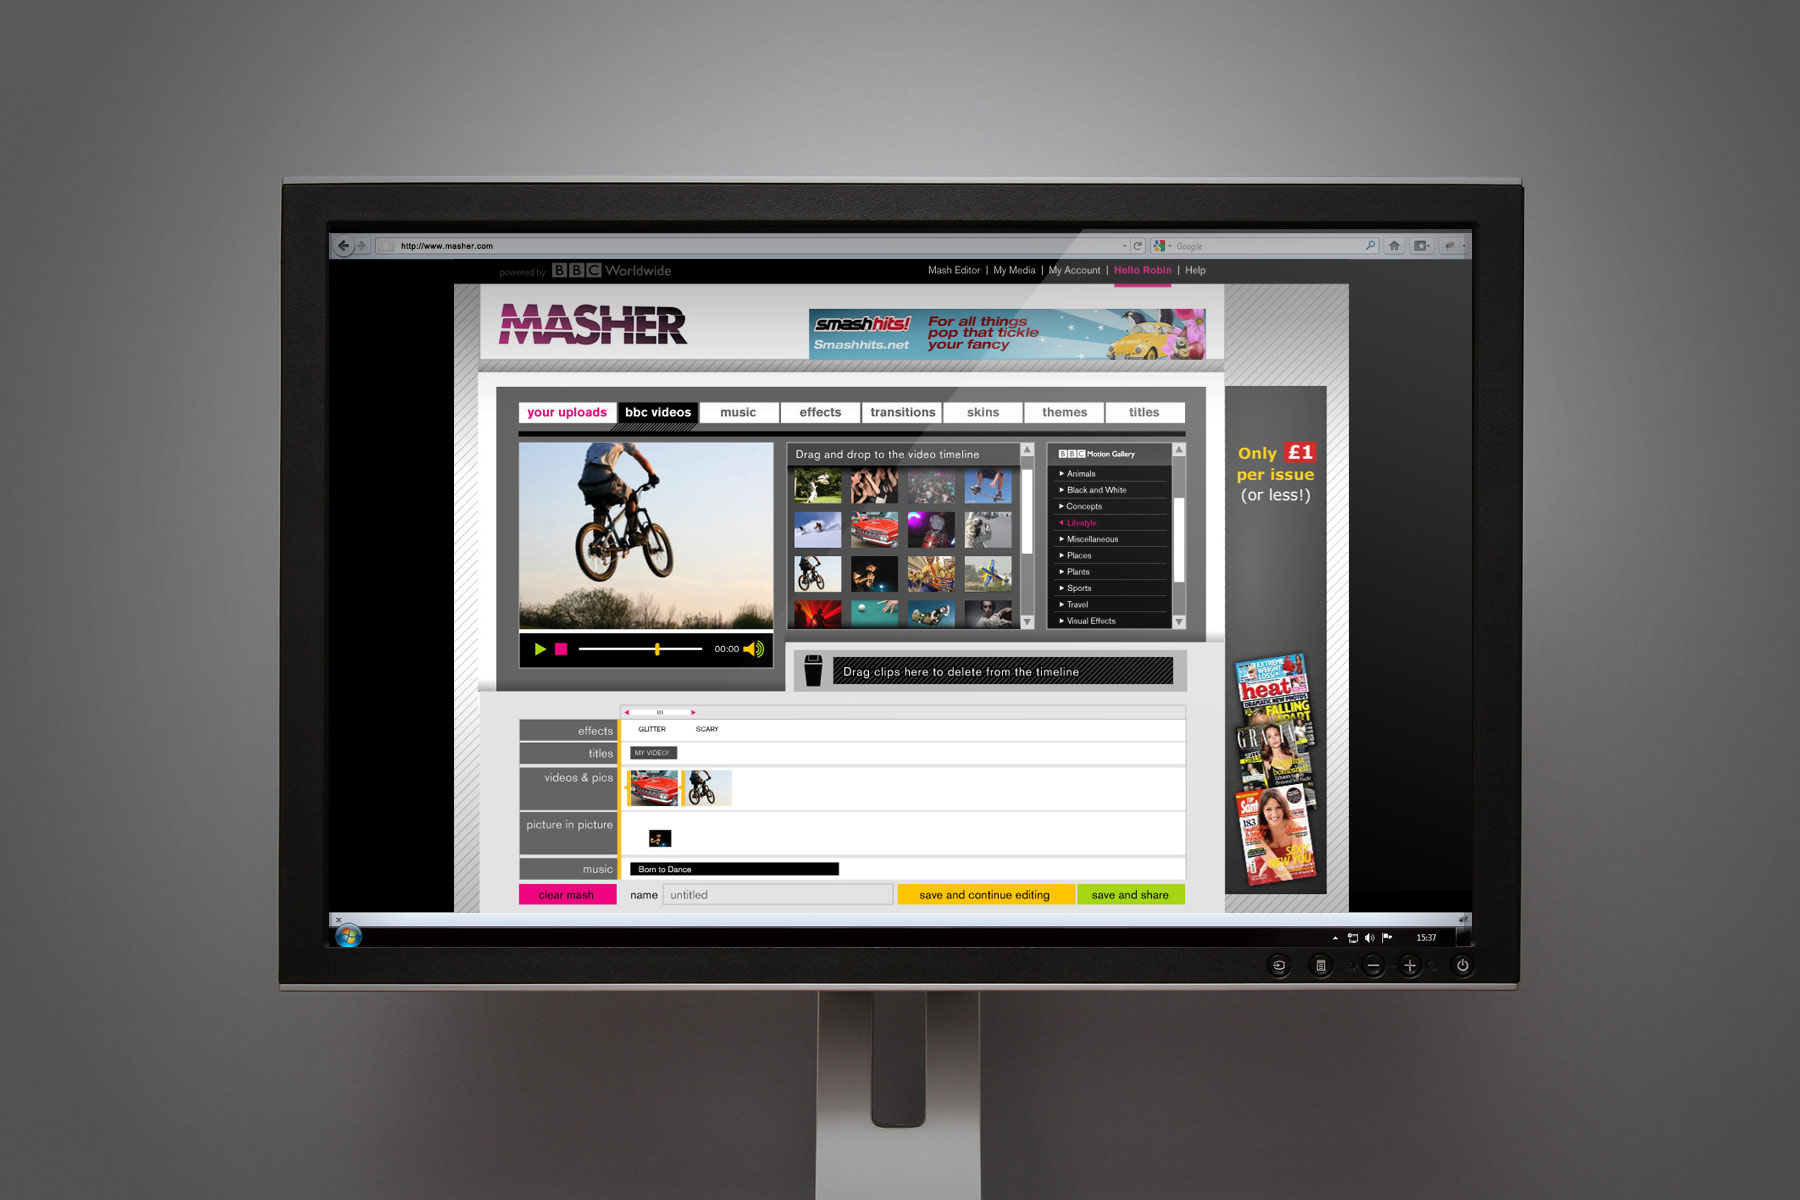 We also advised on the design of the software interface, creating a unique yet functional feel.